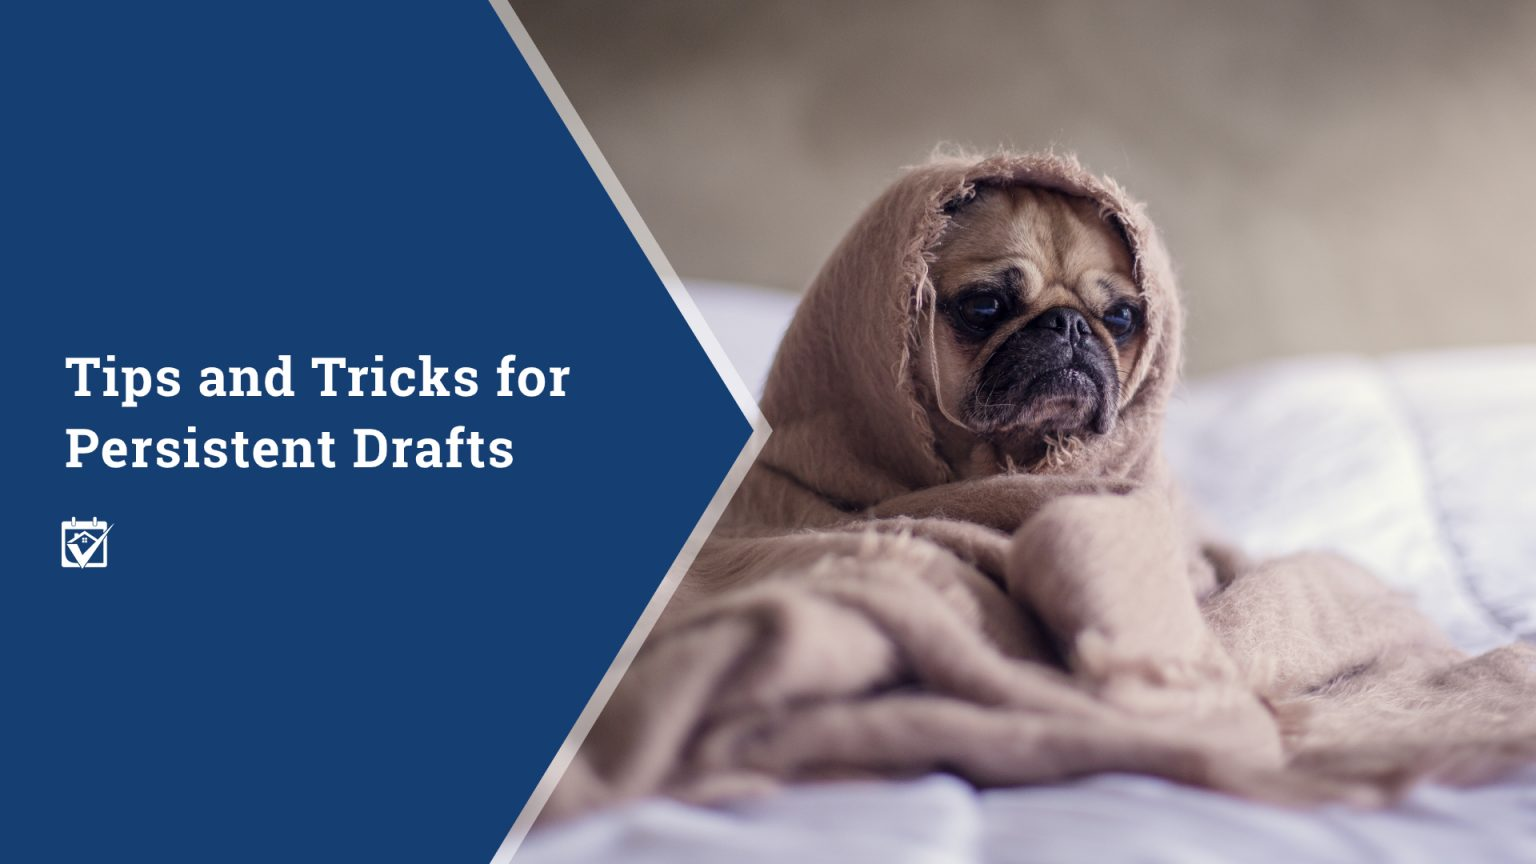 Tips and Tricks for Persistent Drafts